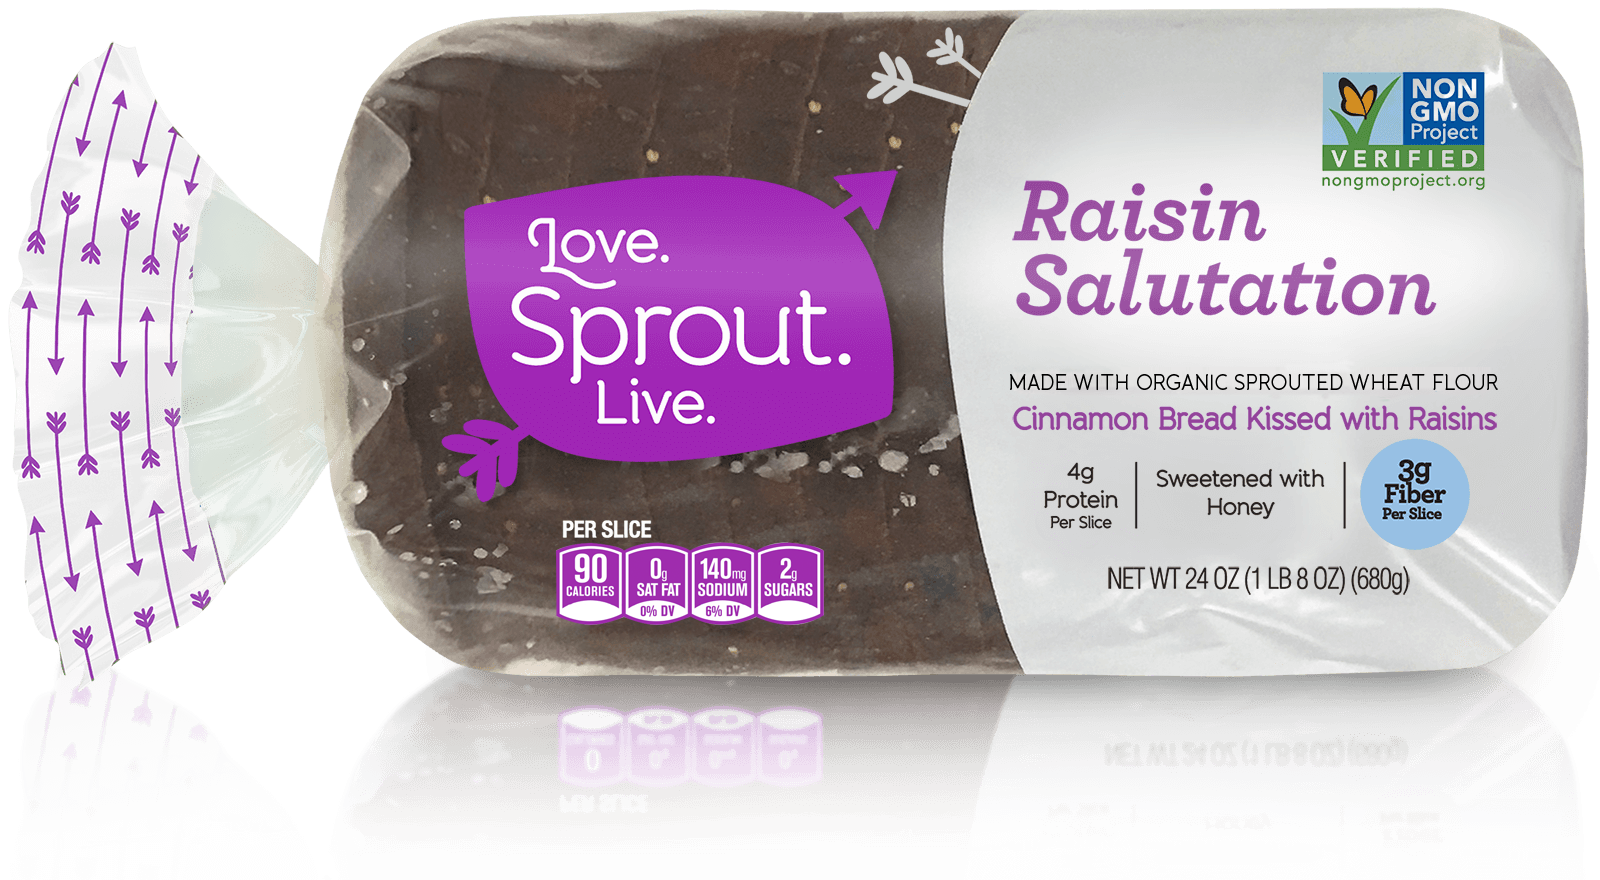 Raisin Salutation - The goodness in here honors the goodness in you.